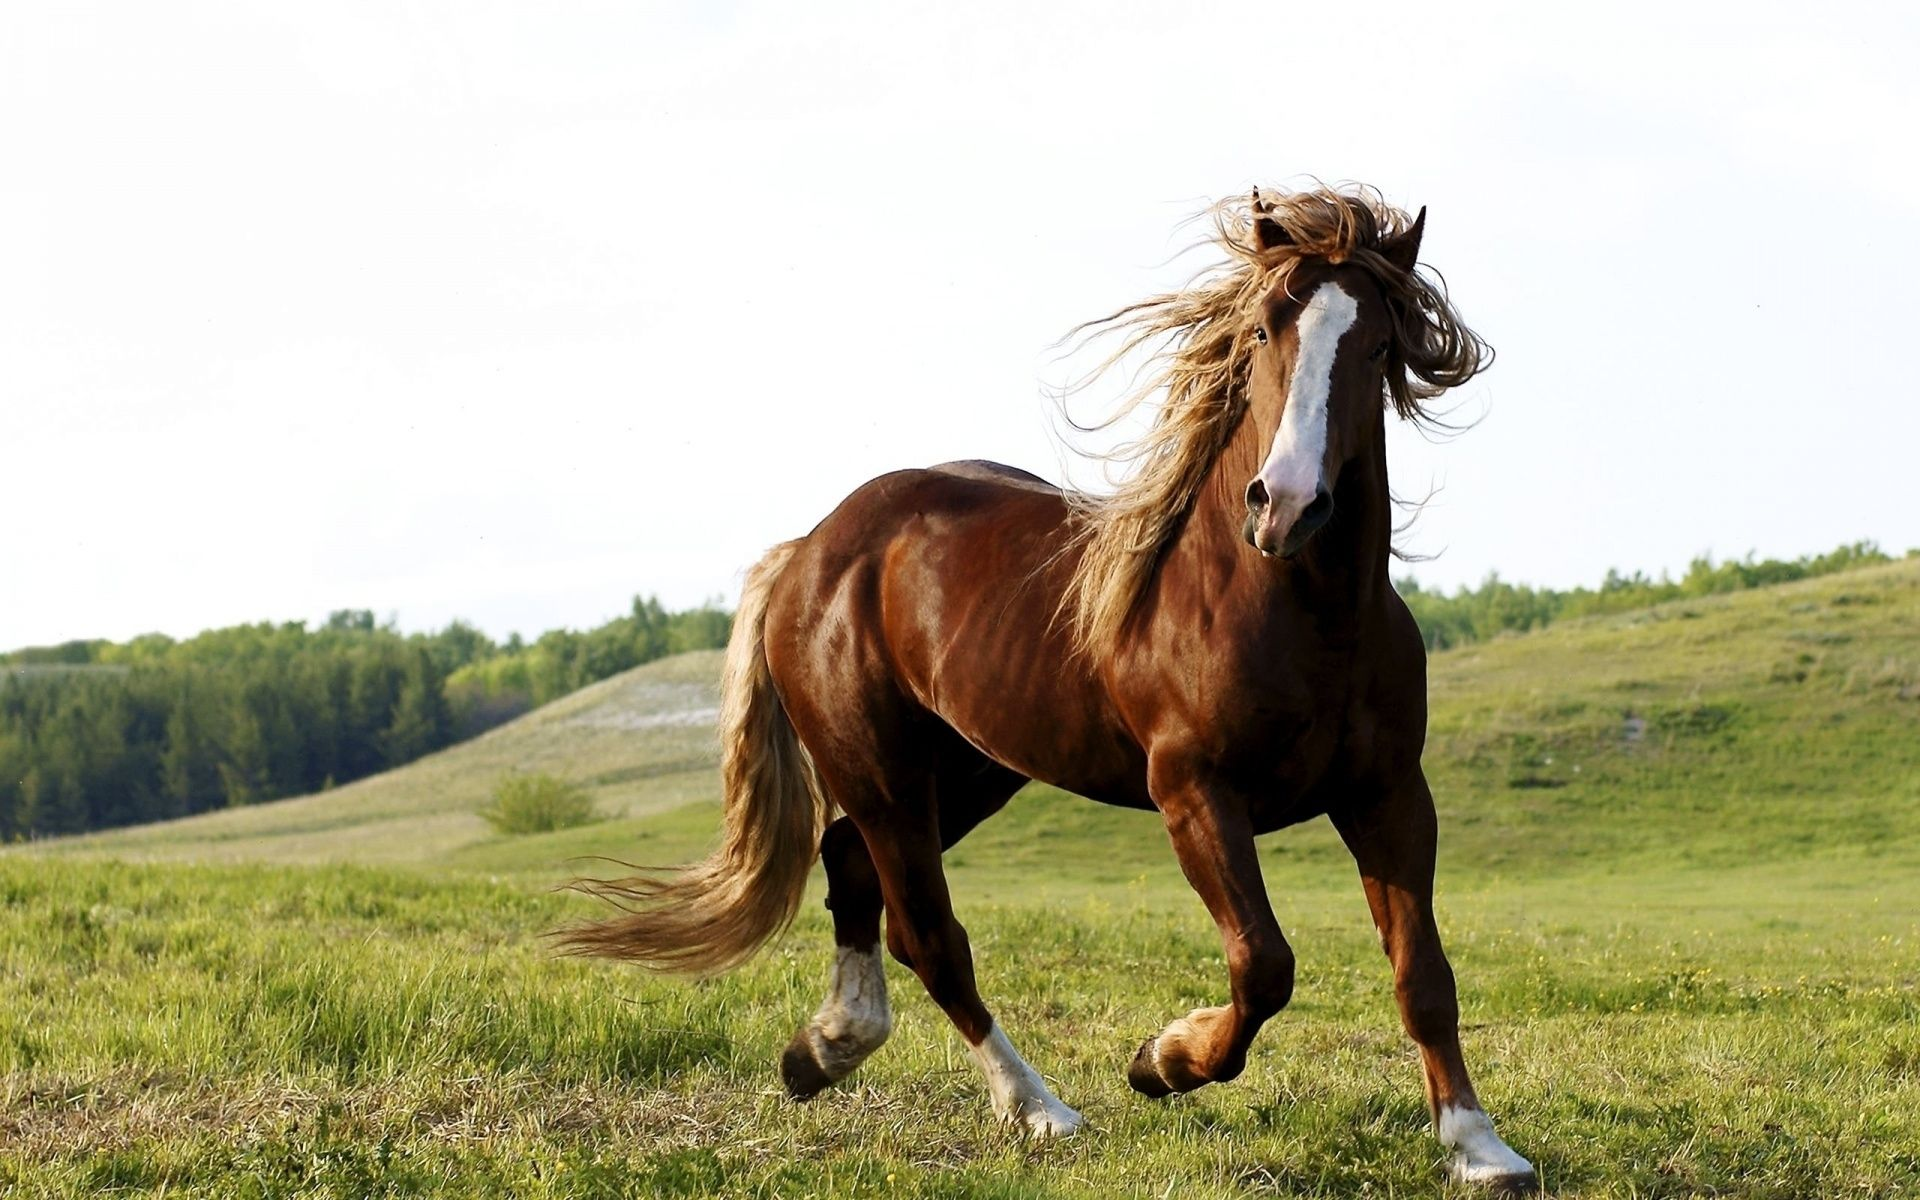 Amazing Wallpaper Horse Android - f65d73b2f7564e5a0ecd0892664db289  Pictures_207588.jpg